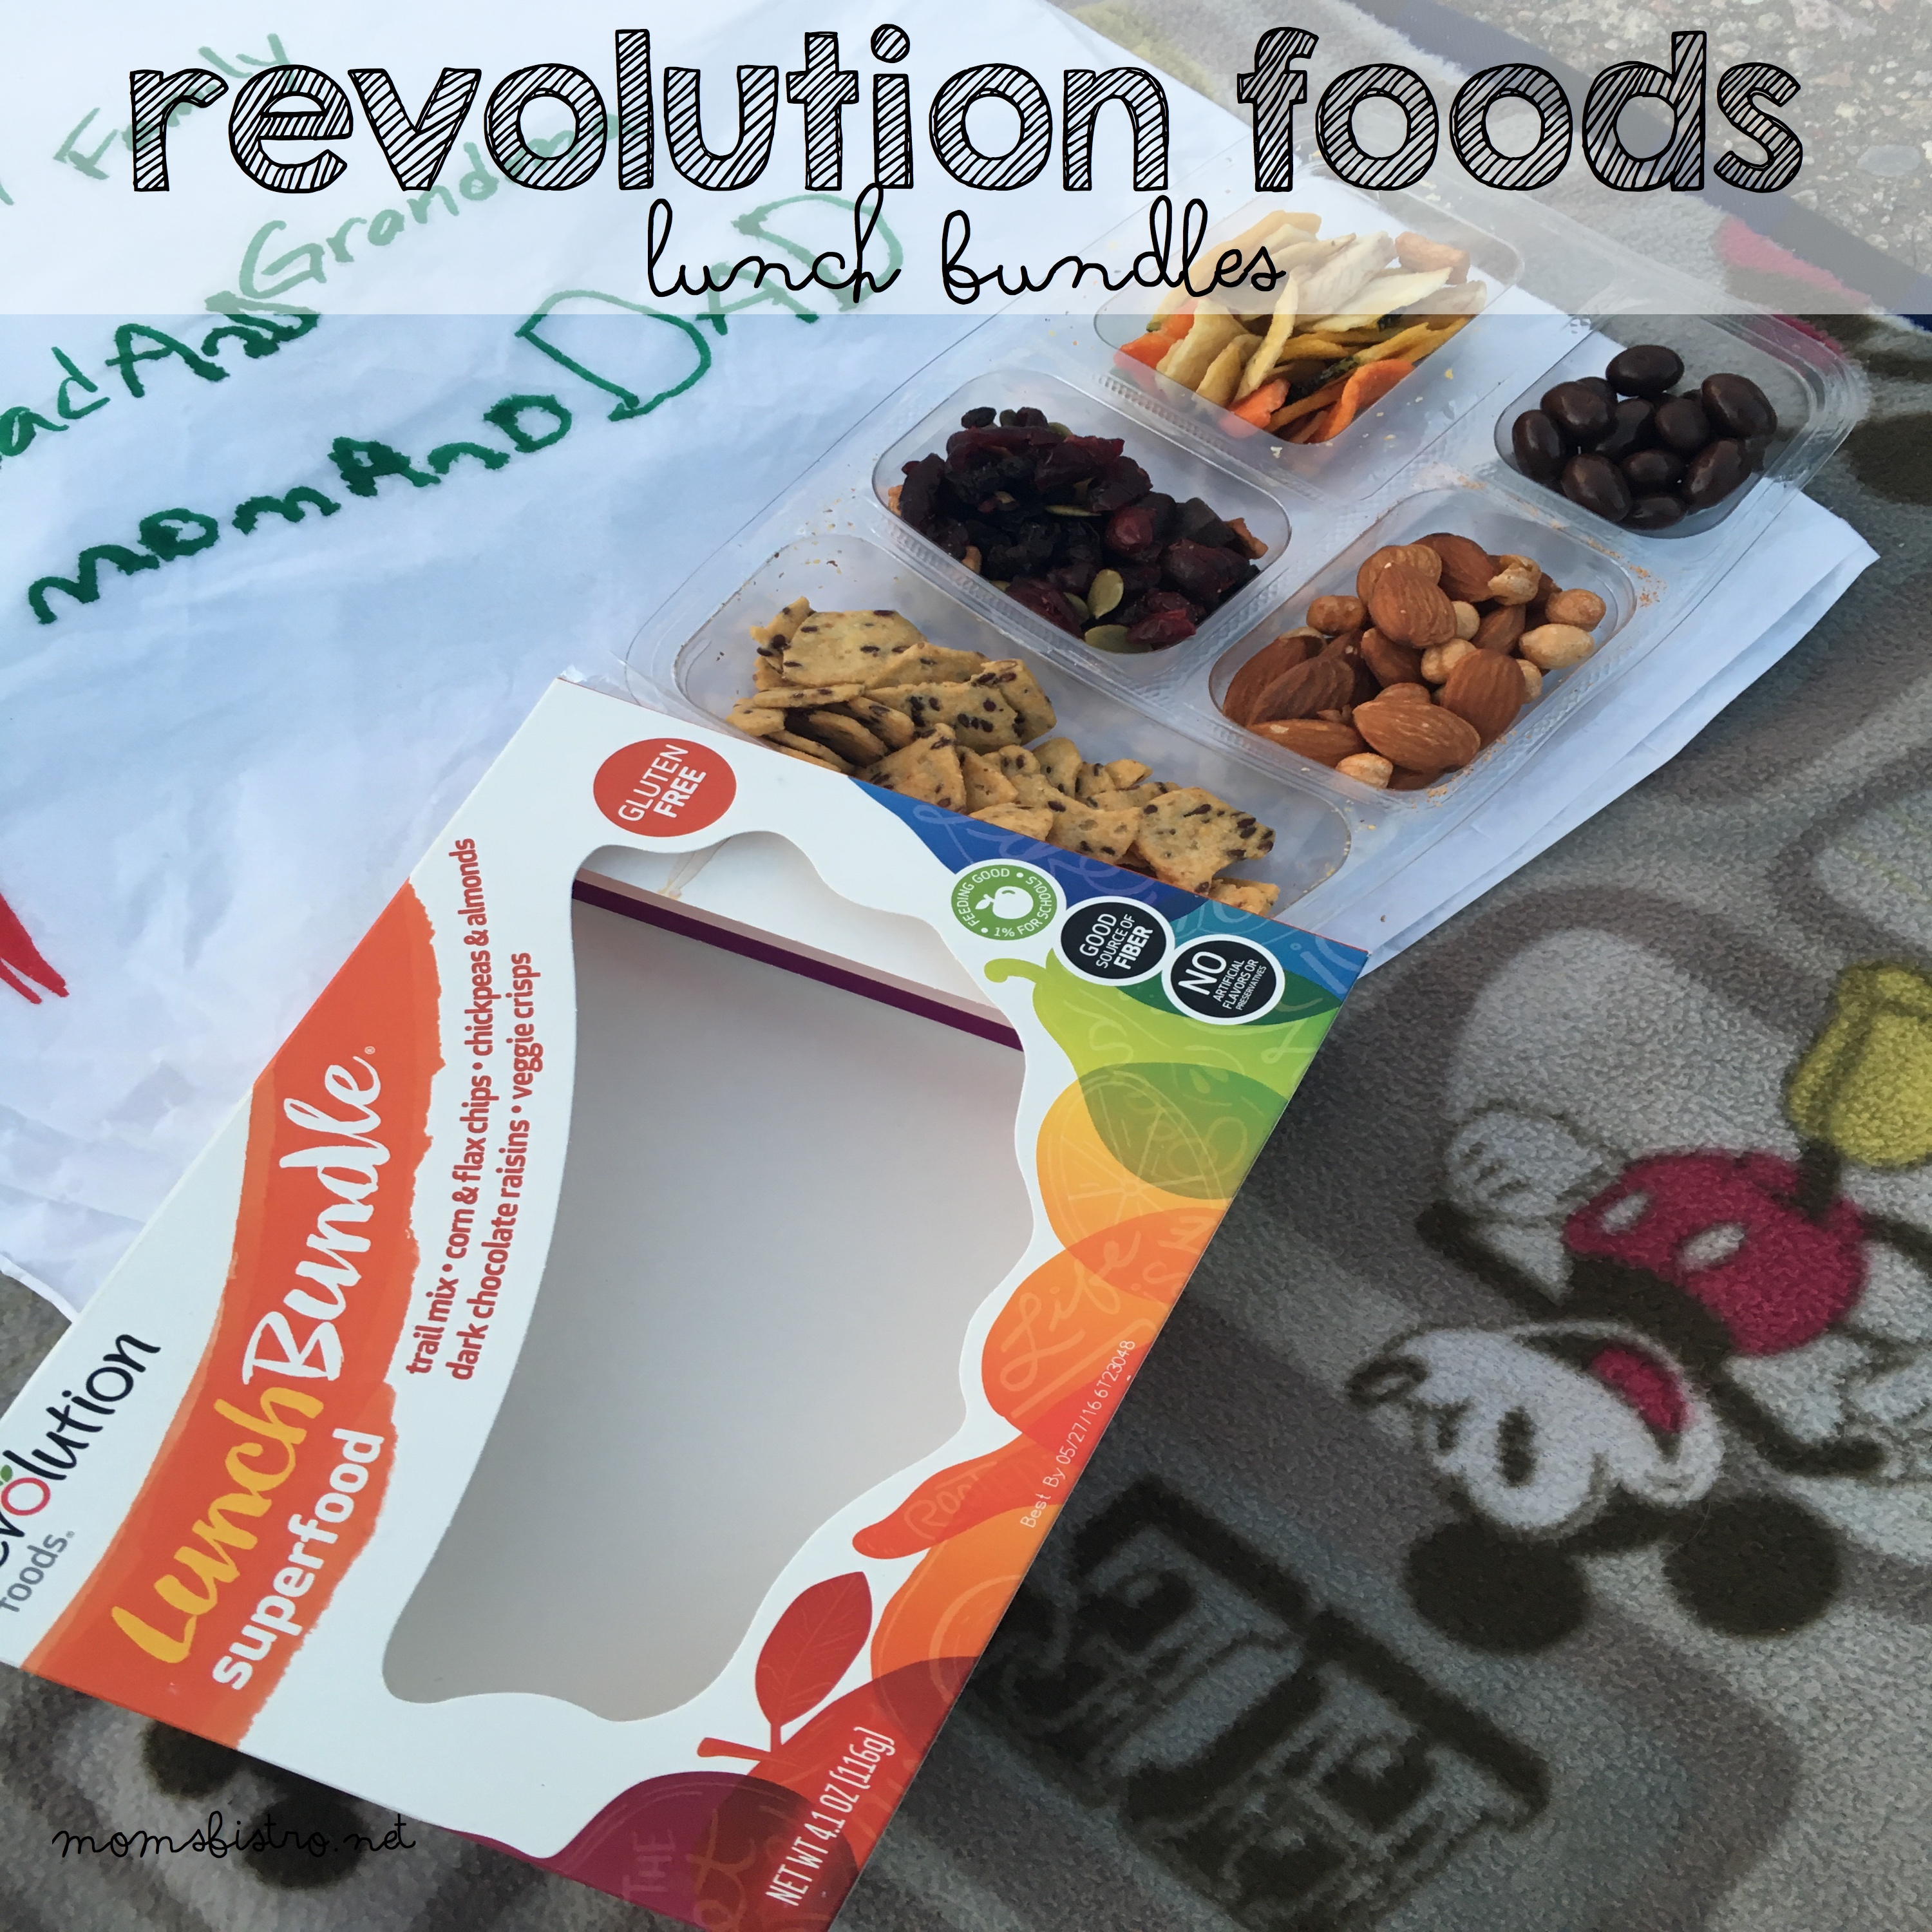 A Healthy On-The-Go Lunch For Mom's! Revolution Foods Lunch Bundles Review and Giveaway!